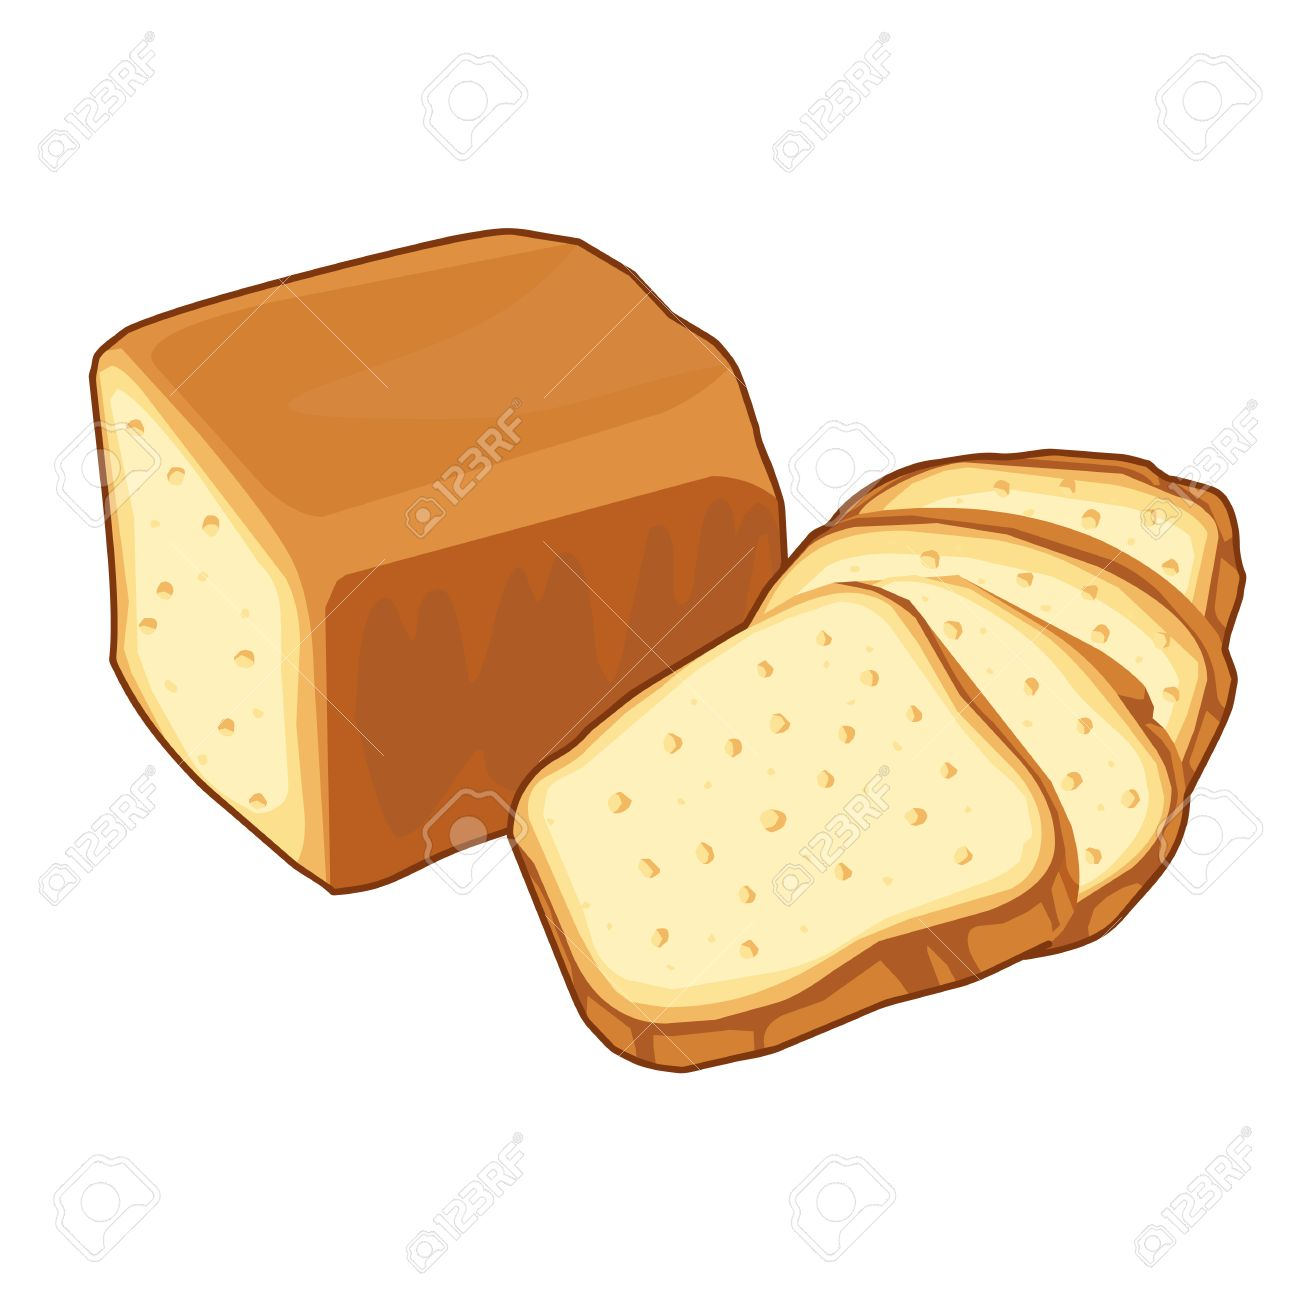 bread loaf Isolated illustration on white background - 22968801